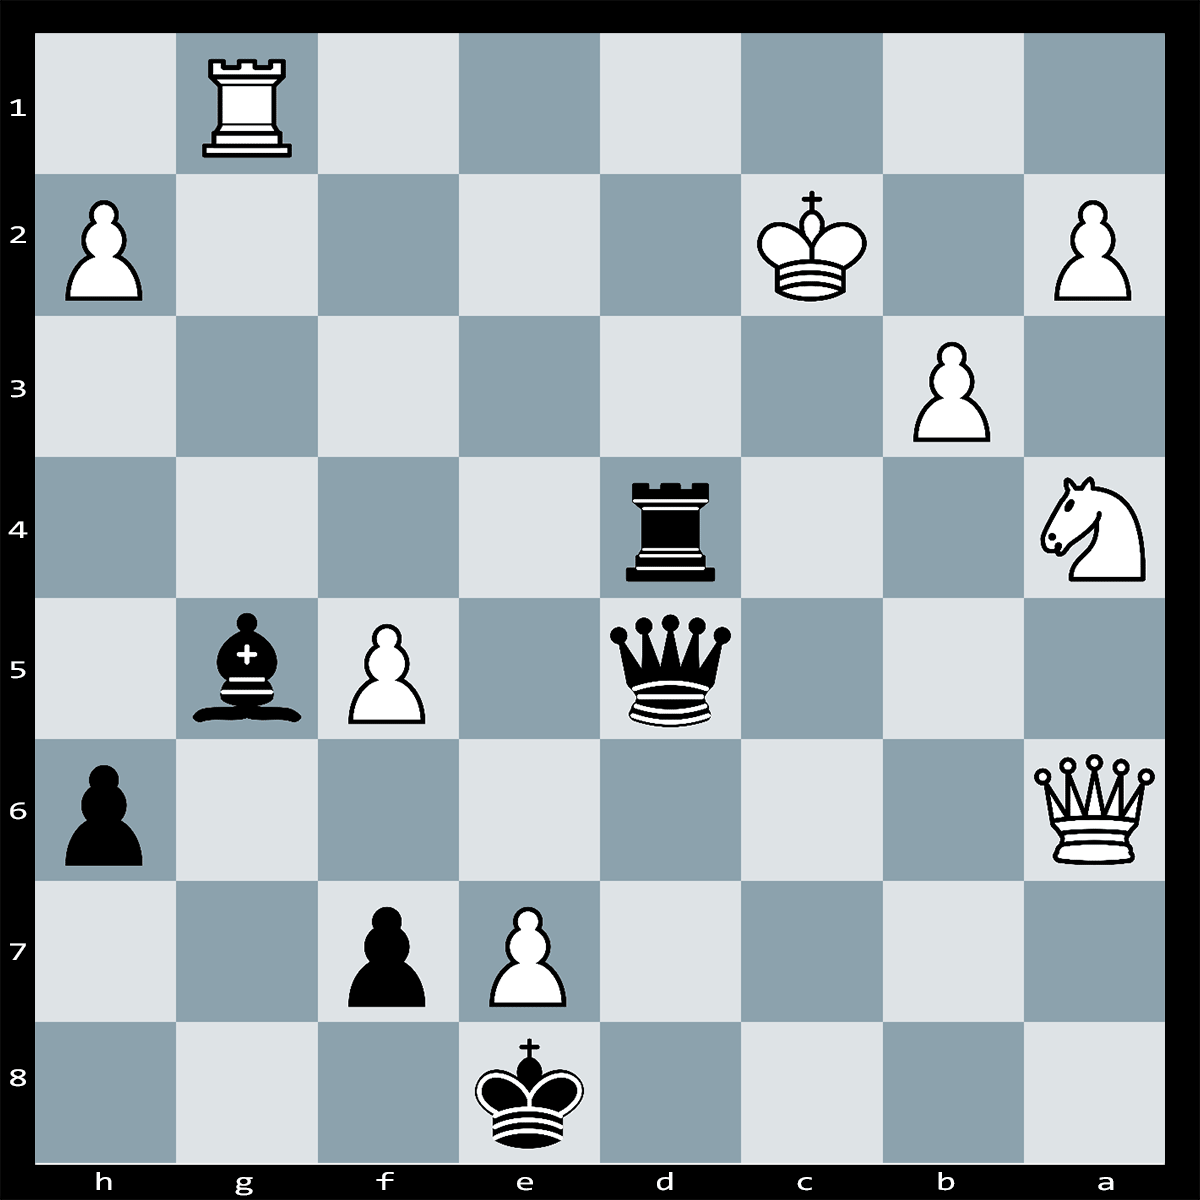 Mate in five moves Black to play - Chess Puzzle #7